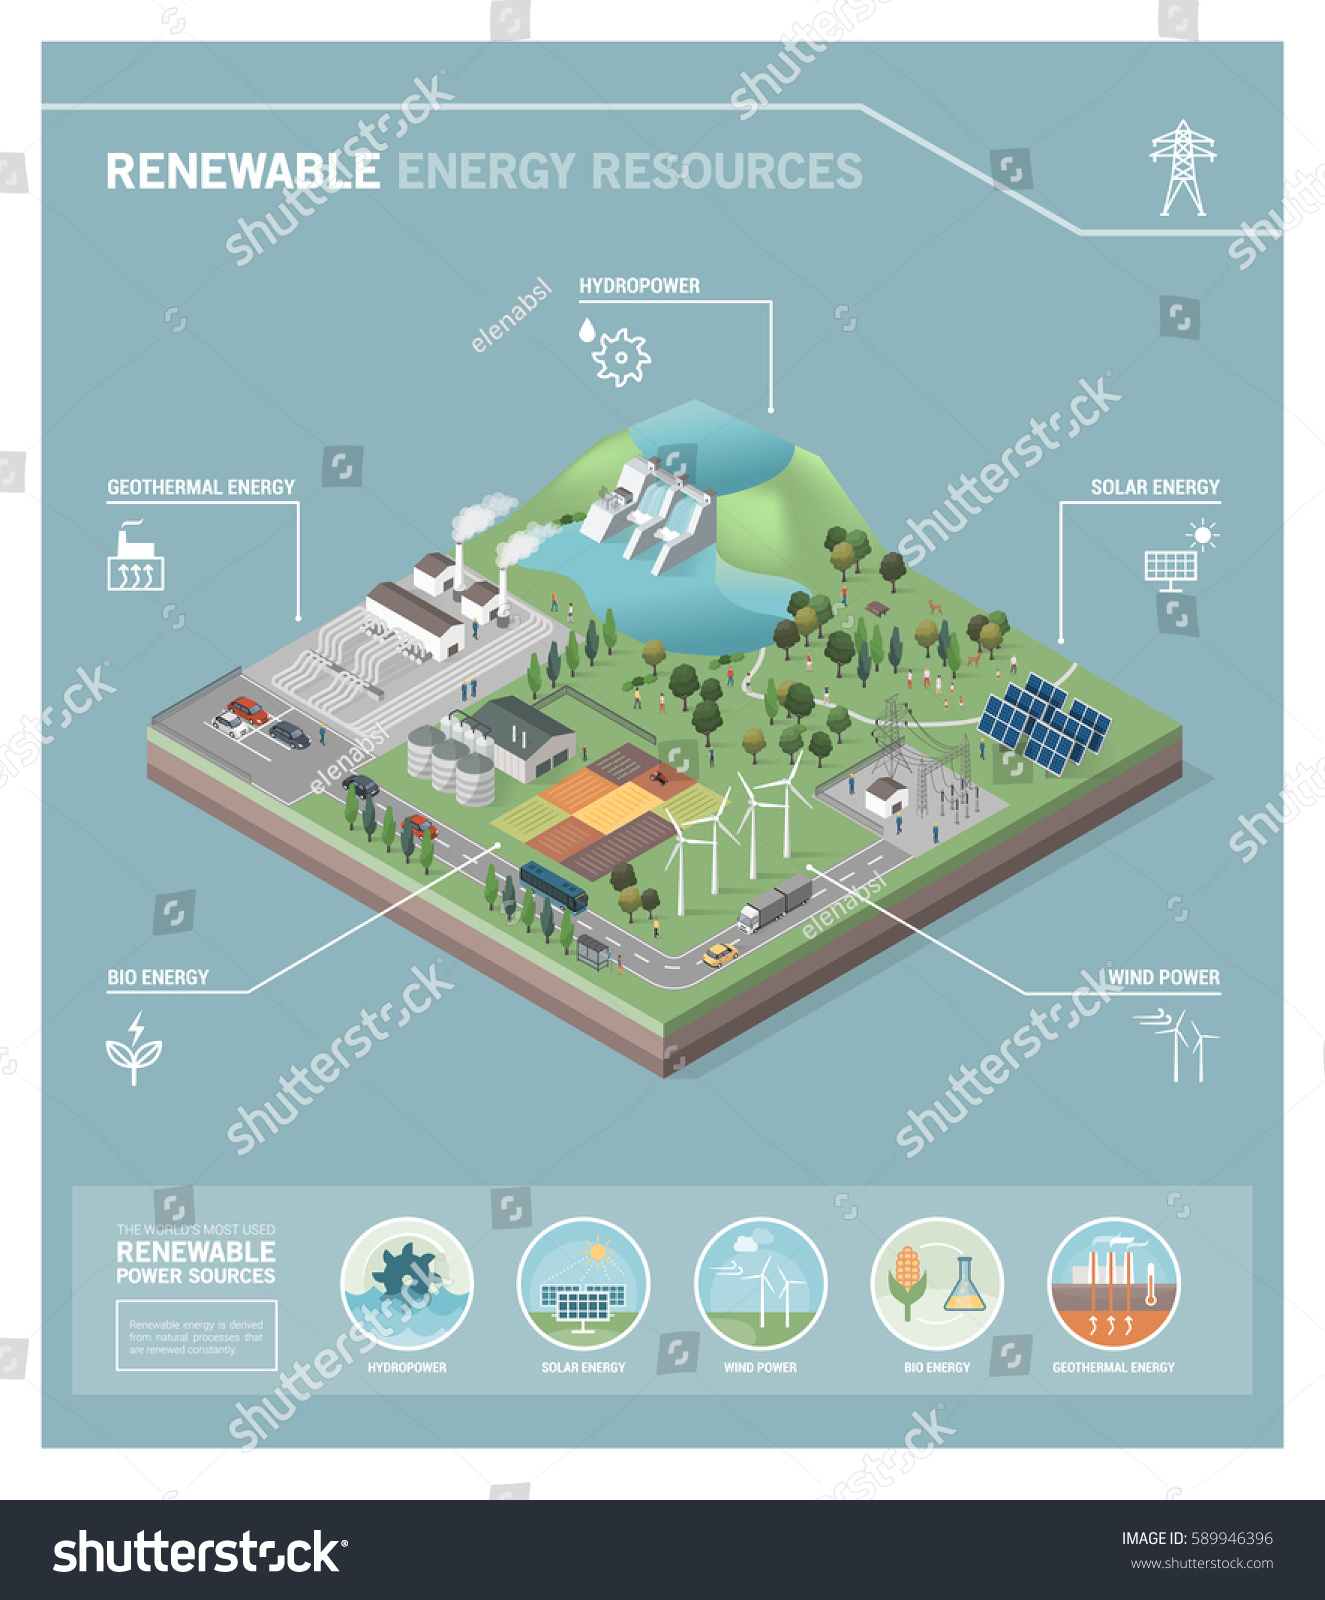 green energy production Physorg provides the latest news on energy sciences and green technology, energy technology, energy renovation, alternative energy, and green energy.